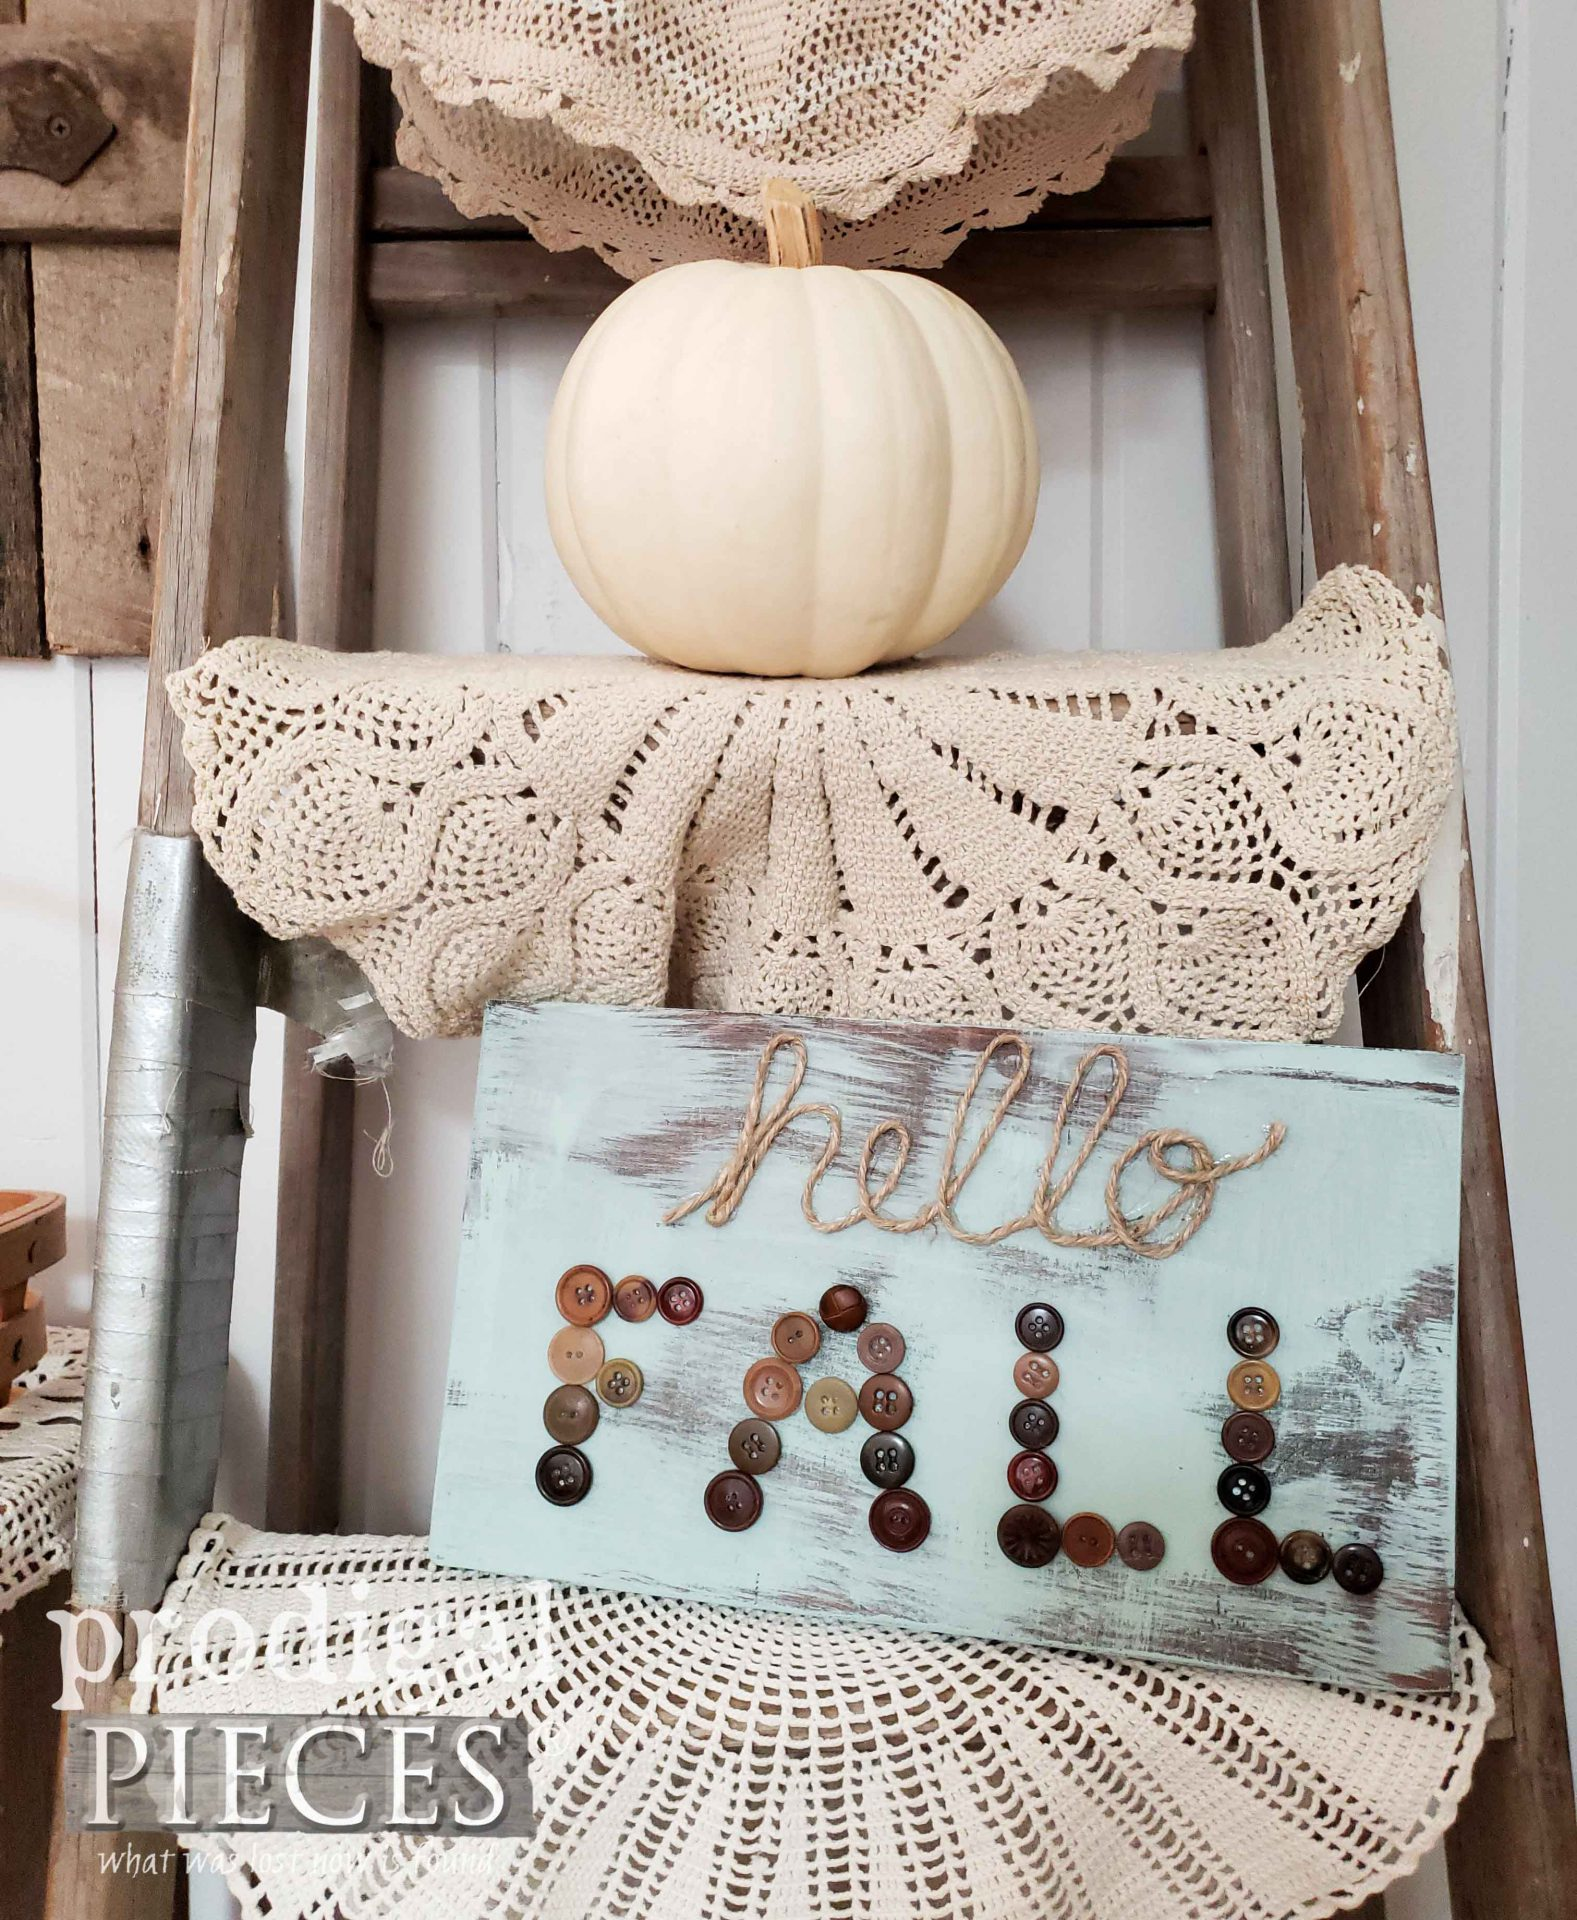 Hello Fall Handmade Sign with Vintage Buttons and Twine by Prodigal Pieces | prodigalpieces.com #prodigalpieces #fall #handmade #home #farmhouse #homedecor